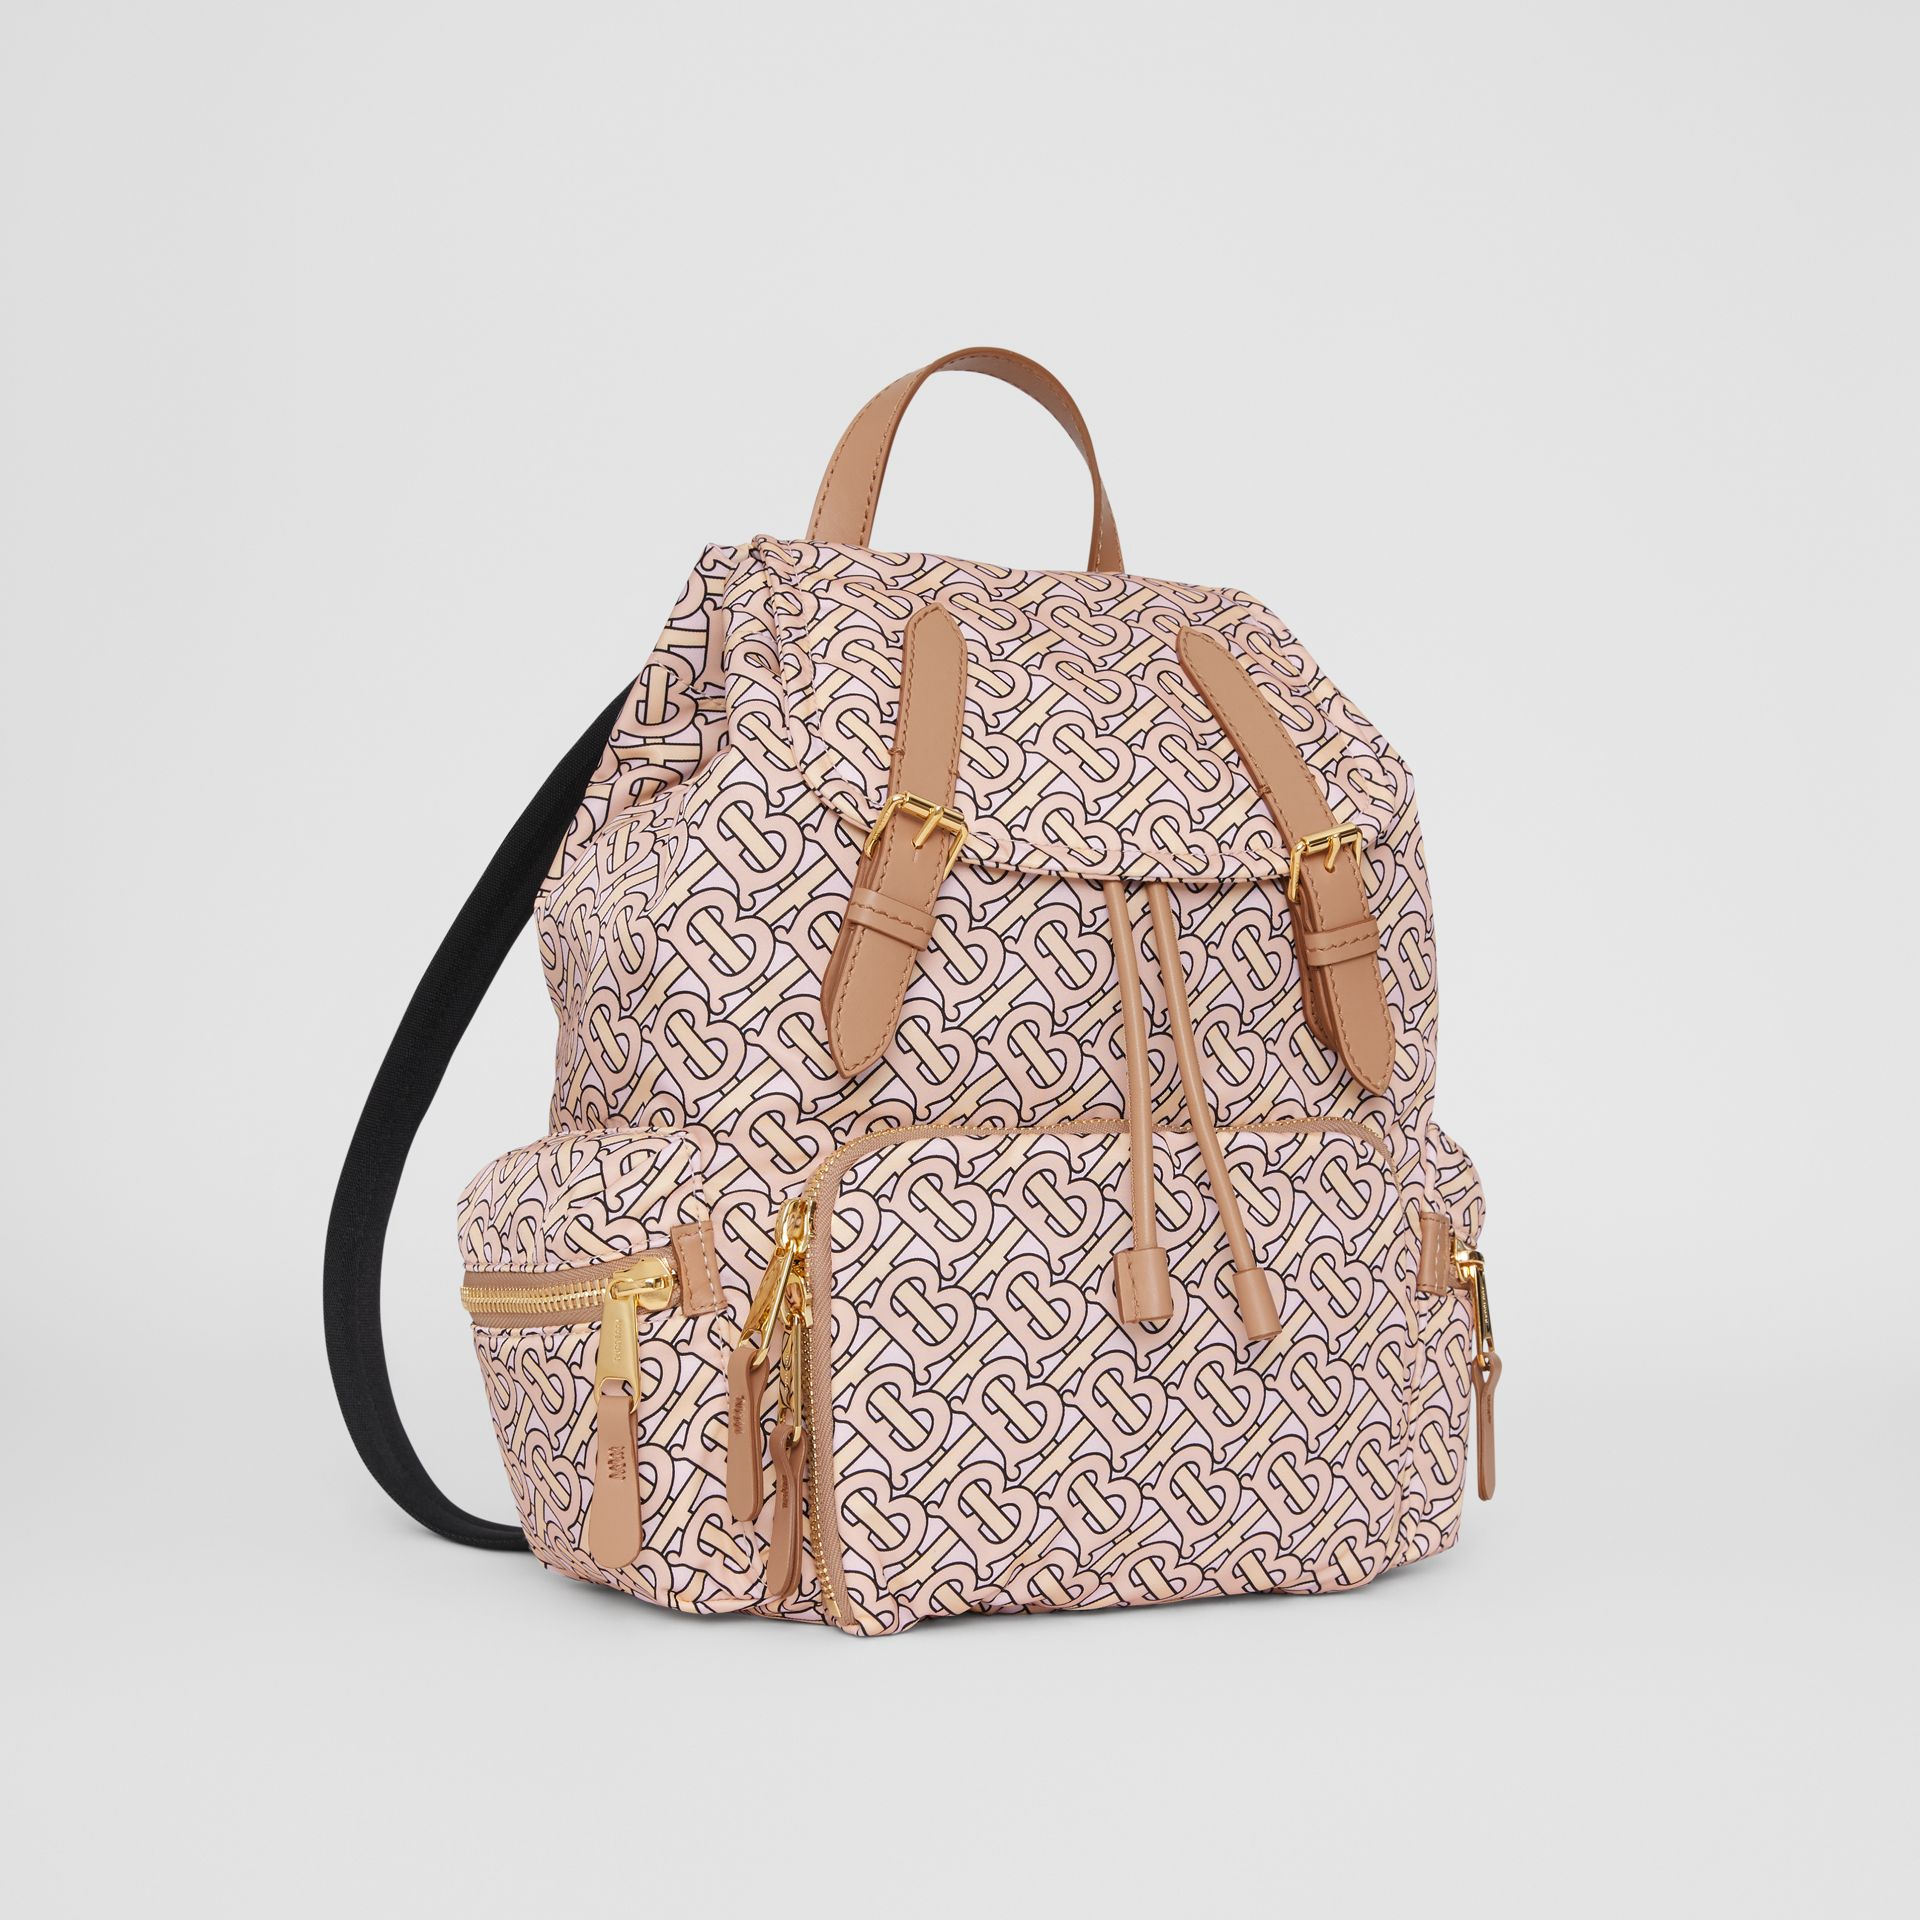 Sac The Rucksack moyen en nylon Monogram (Blush) - Femme | Burberry Canada - photo de la galerie 4